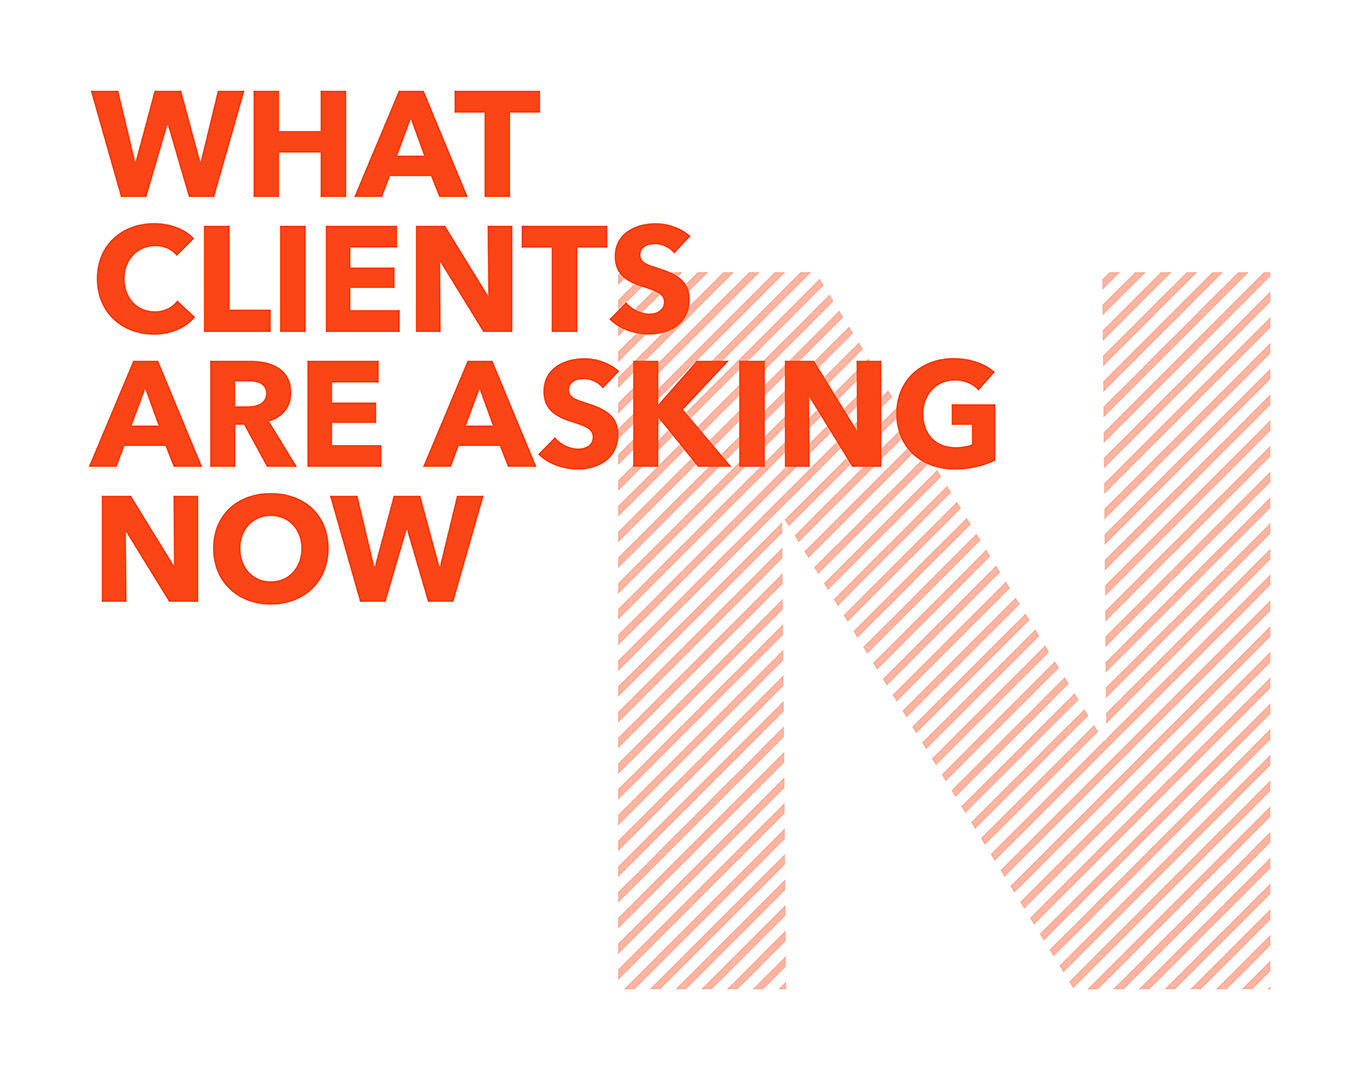 What clients are asking now